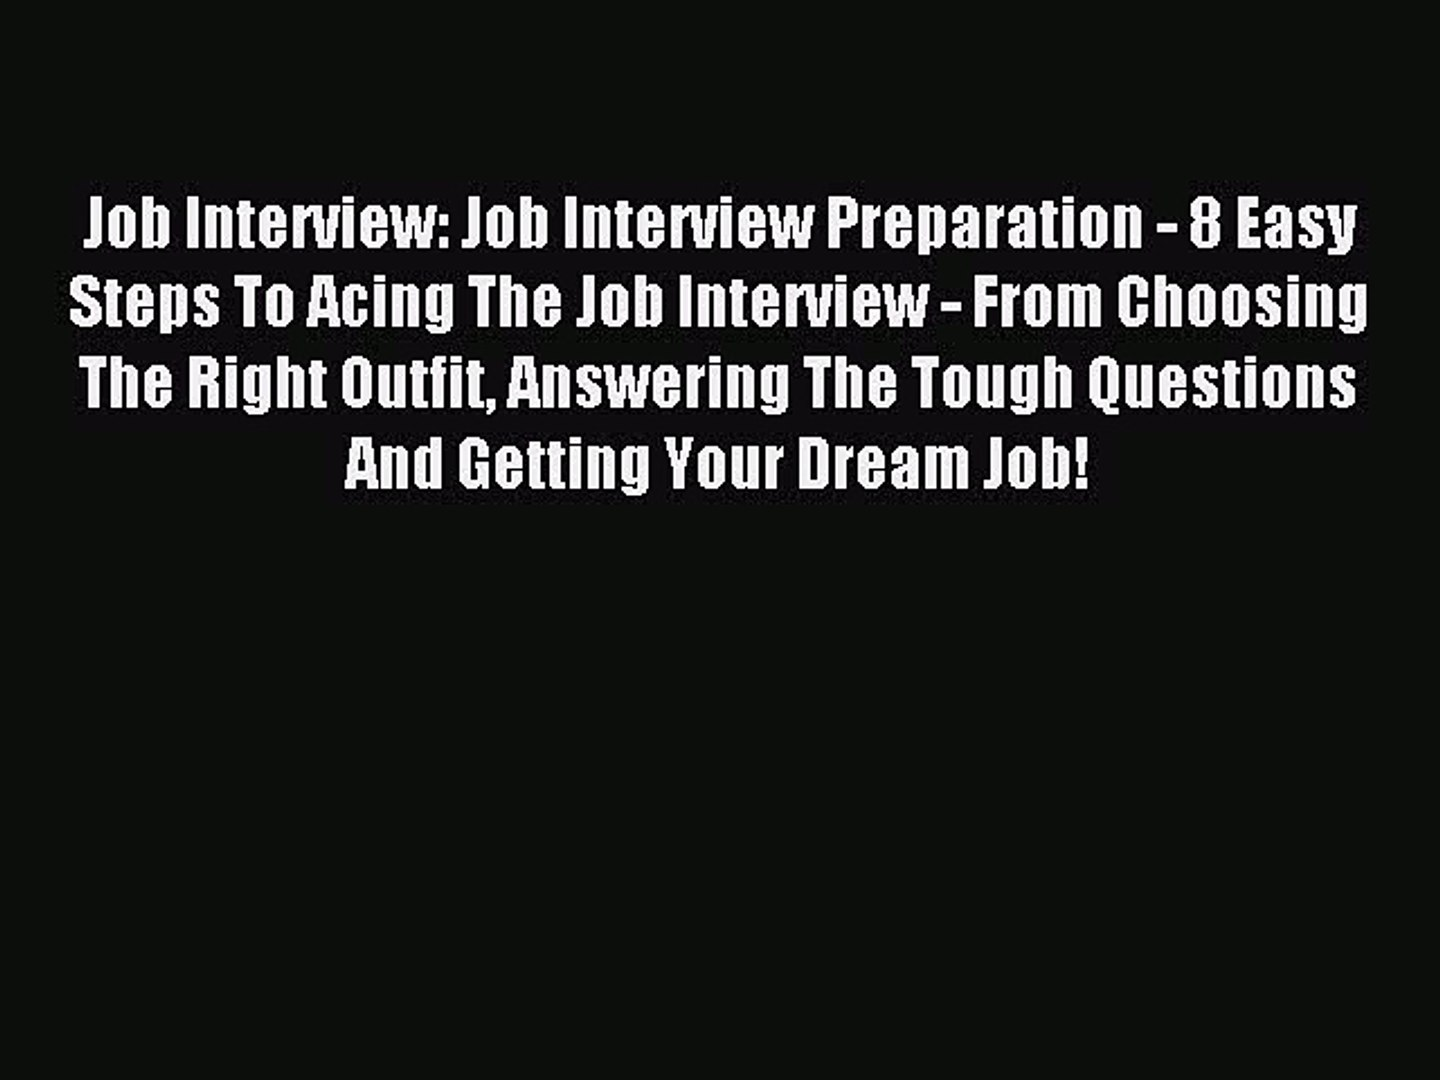 Read Job Interview: Job Interview Preparation - 8 Easy Steps To Acing The Job Interview - From